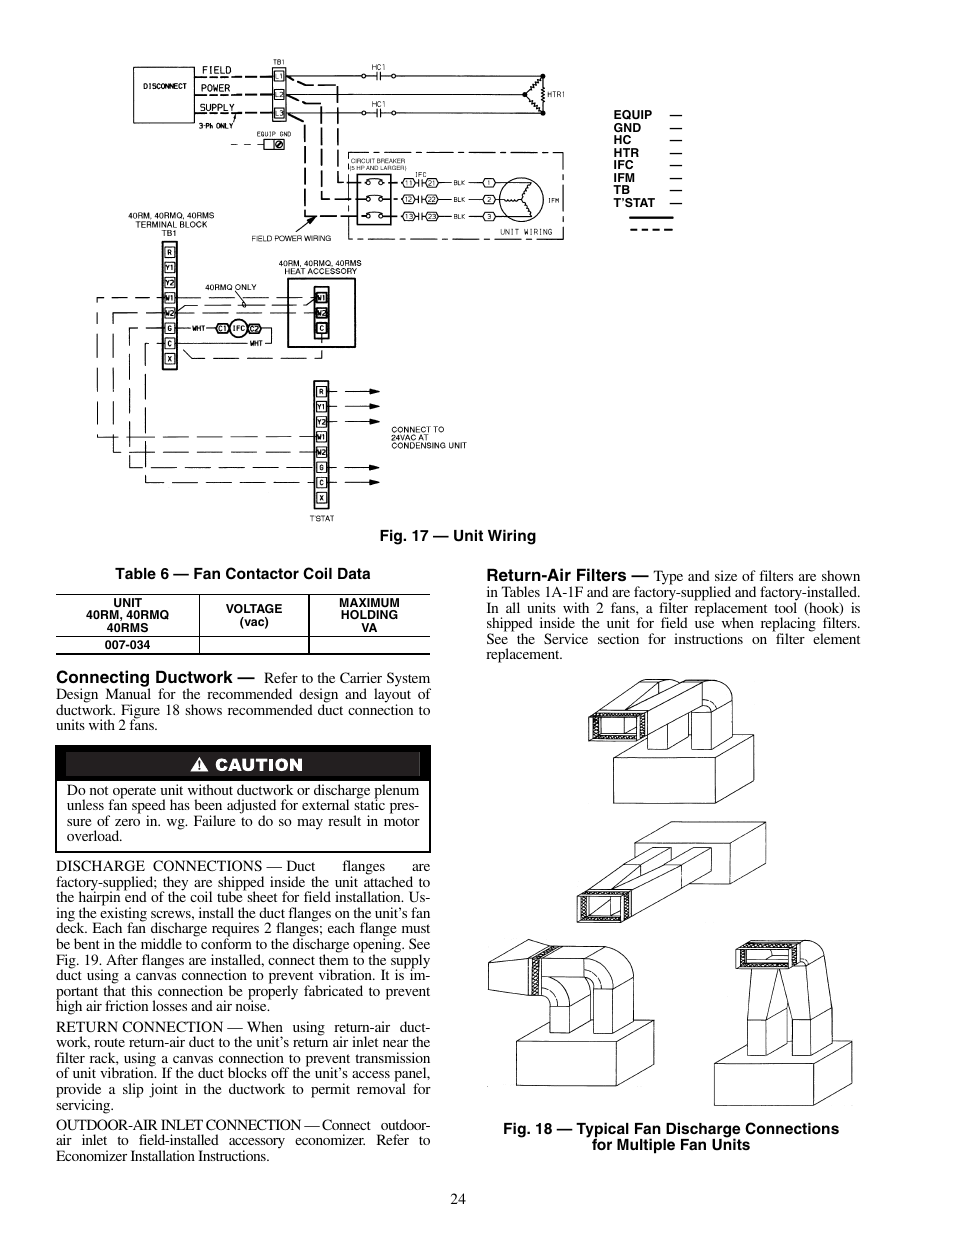 Connecting ductwork, Return-air filters   Carrier 40RMS008-034 User Manual    Page